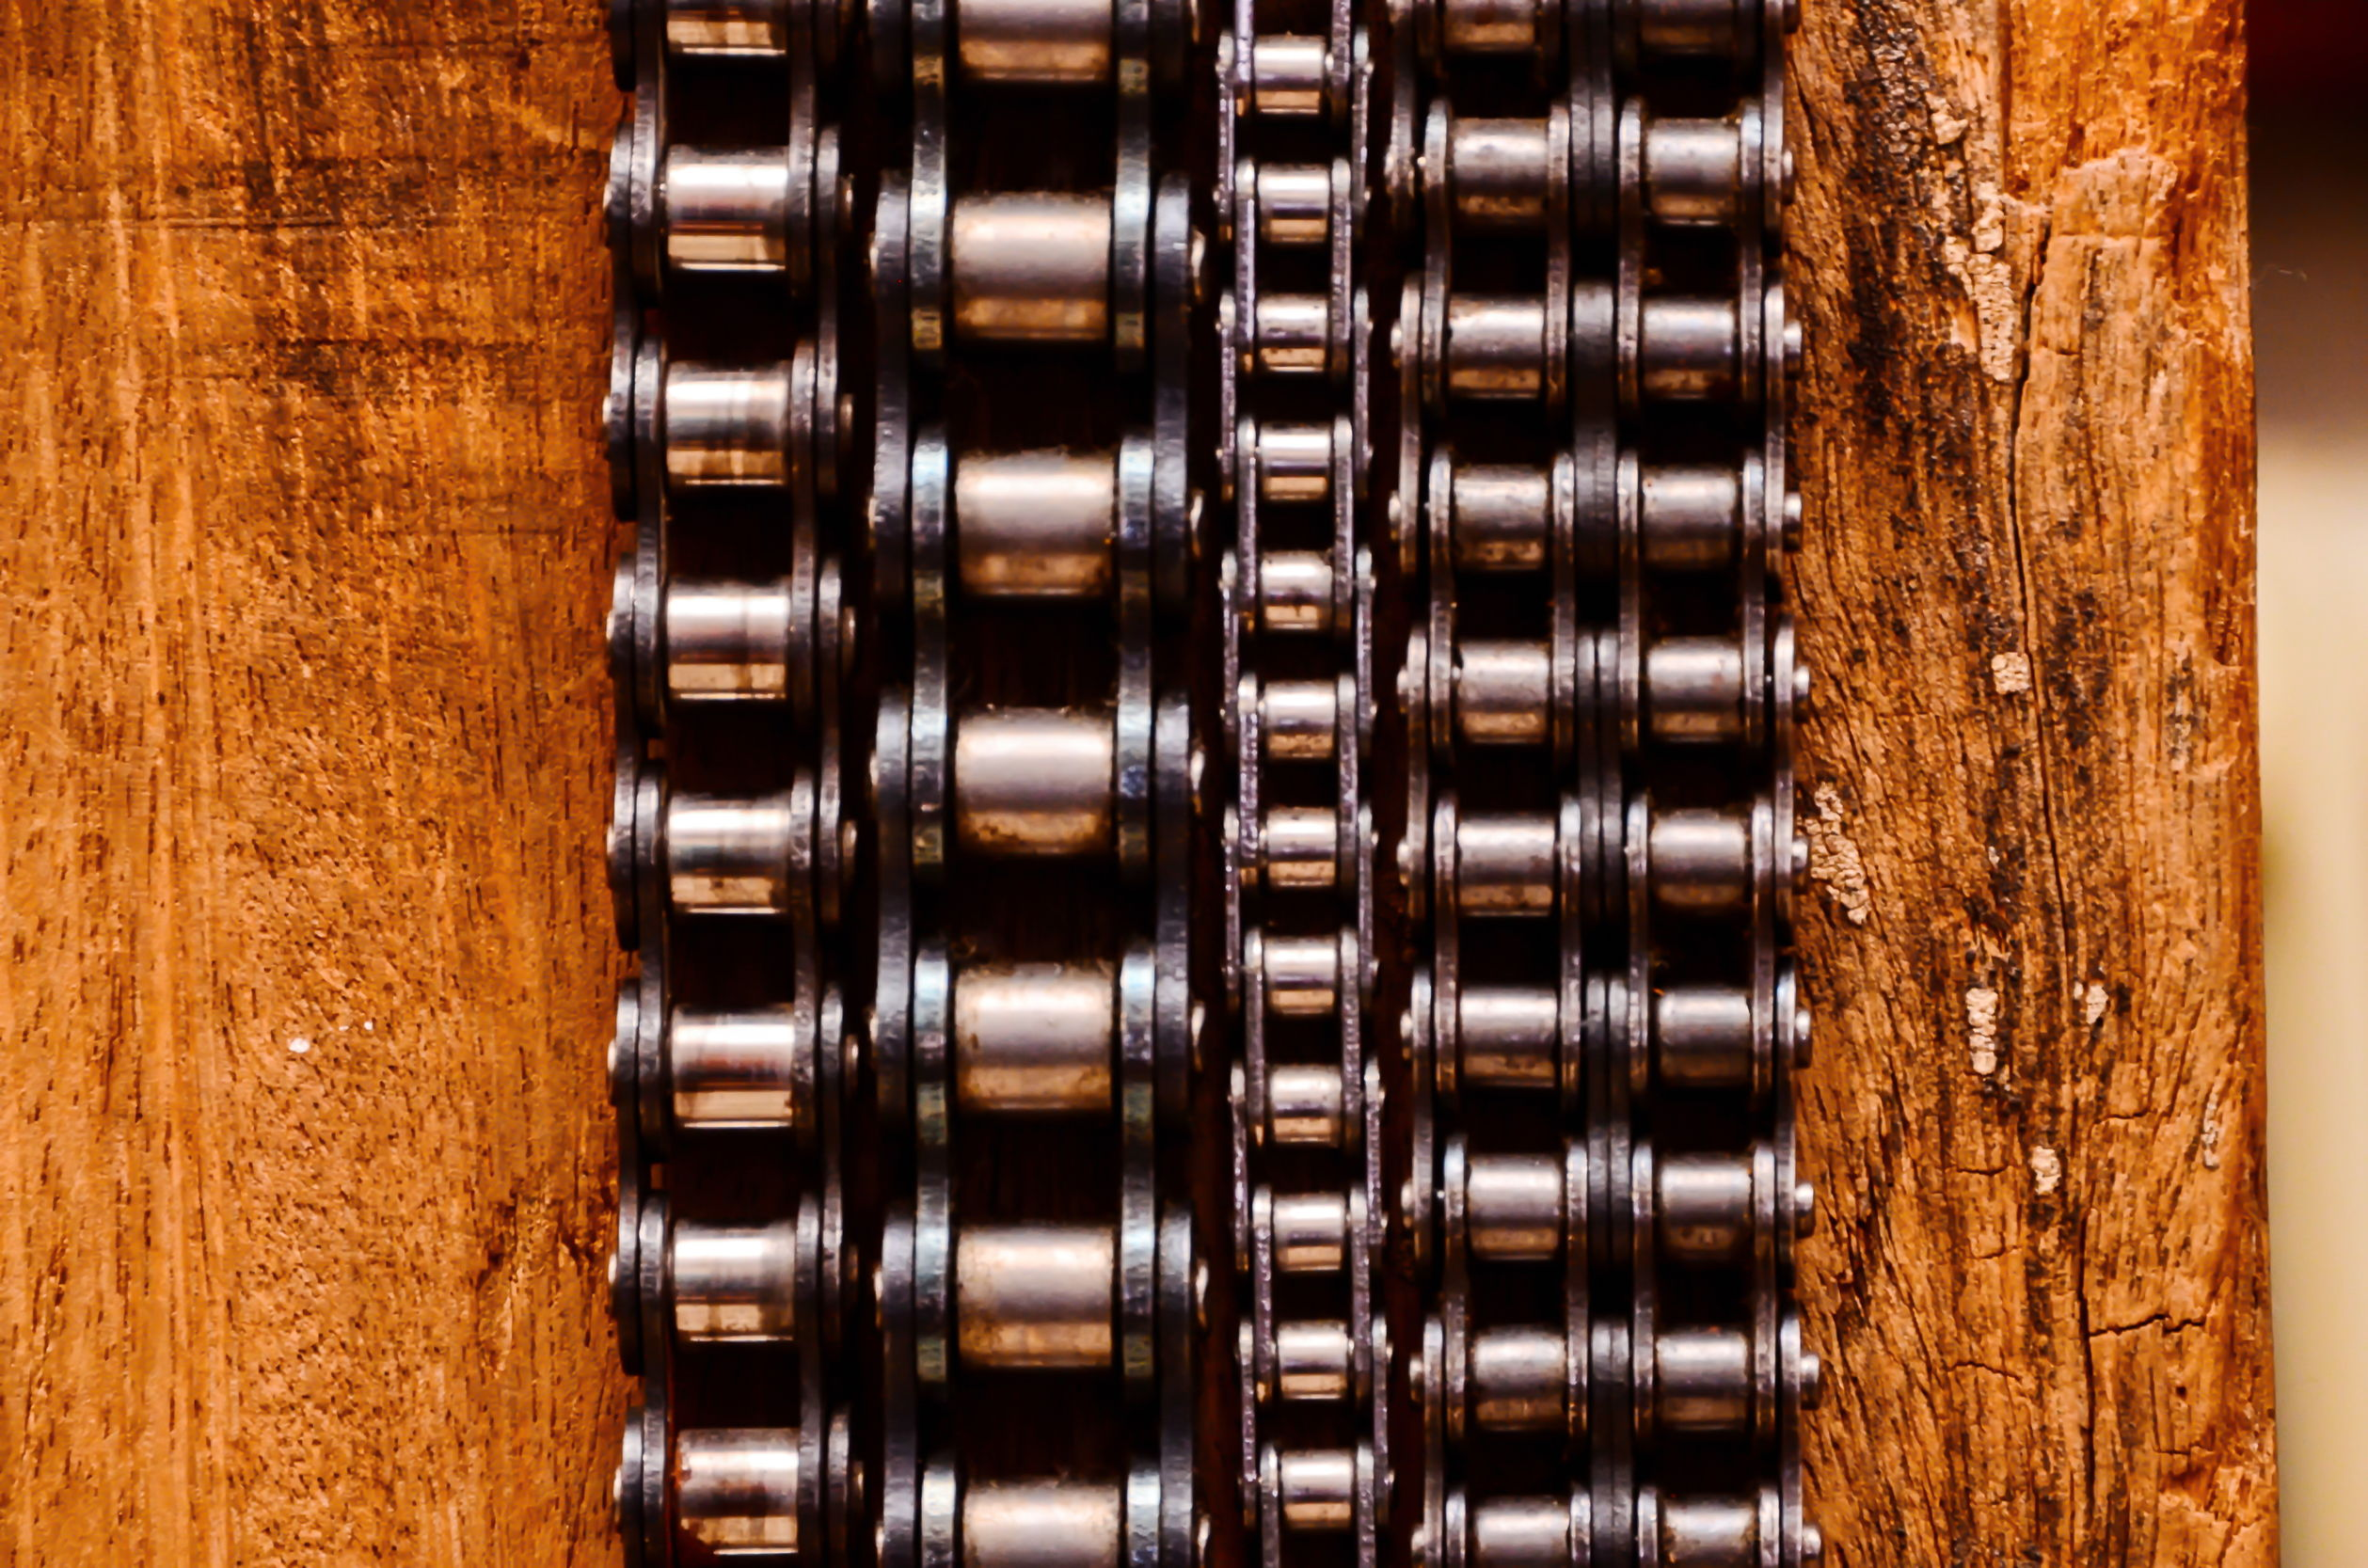 54273790 - part of a used automotive gear chain n a wooden background